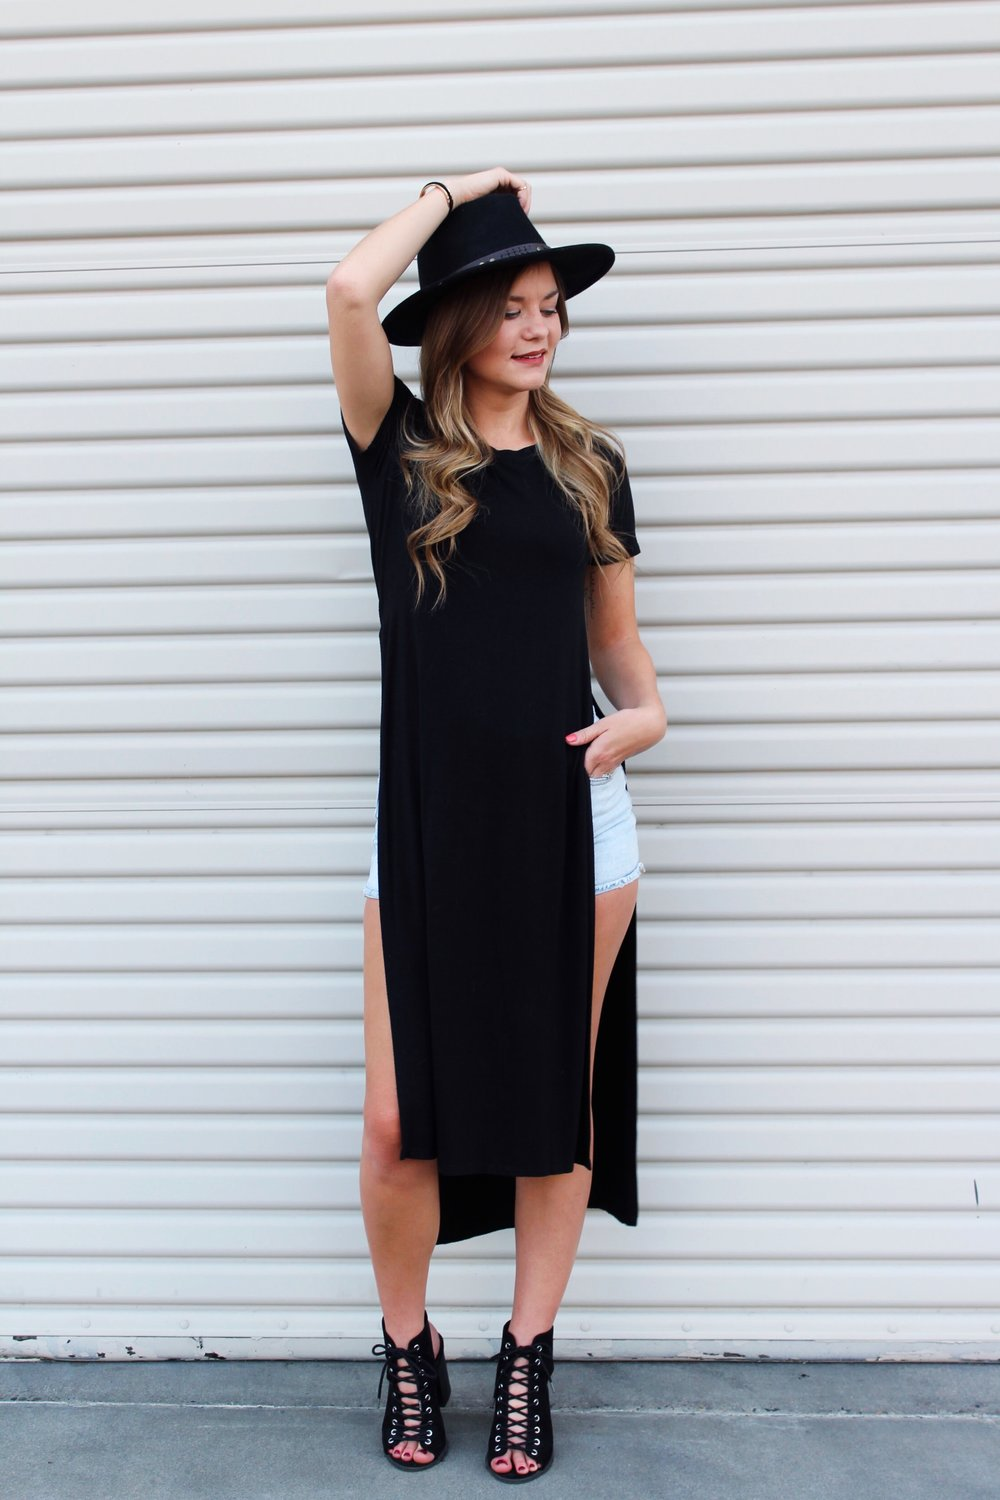 Tee Shirt Dress with Lace Up Heels and A wide brim black fedora hat.